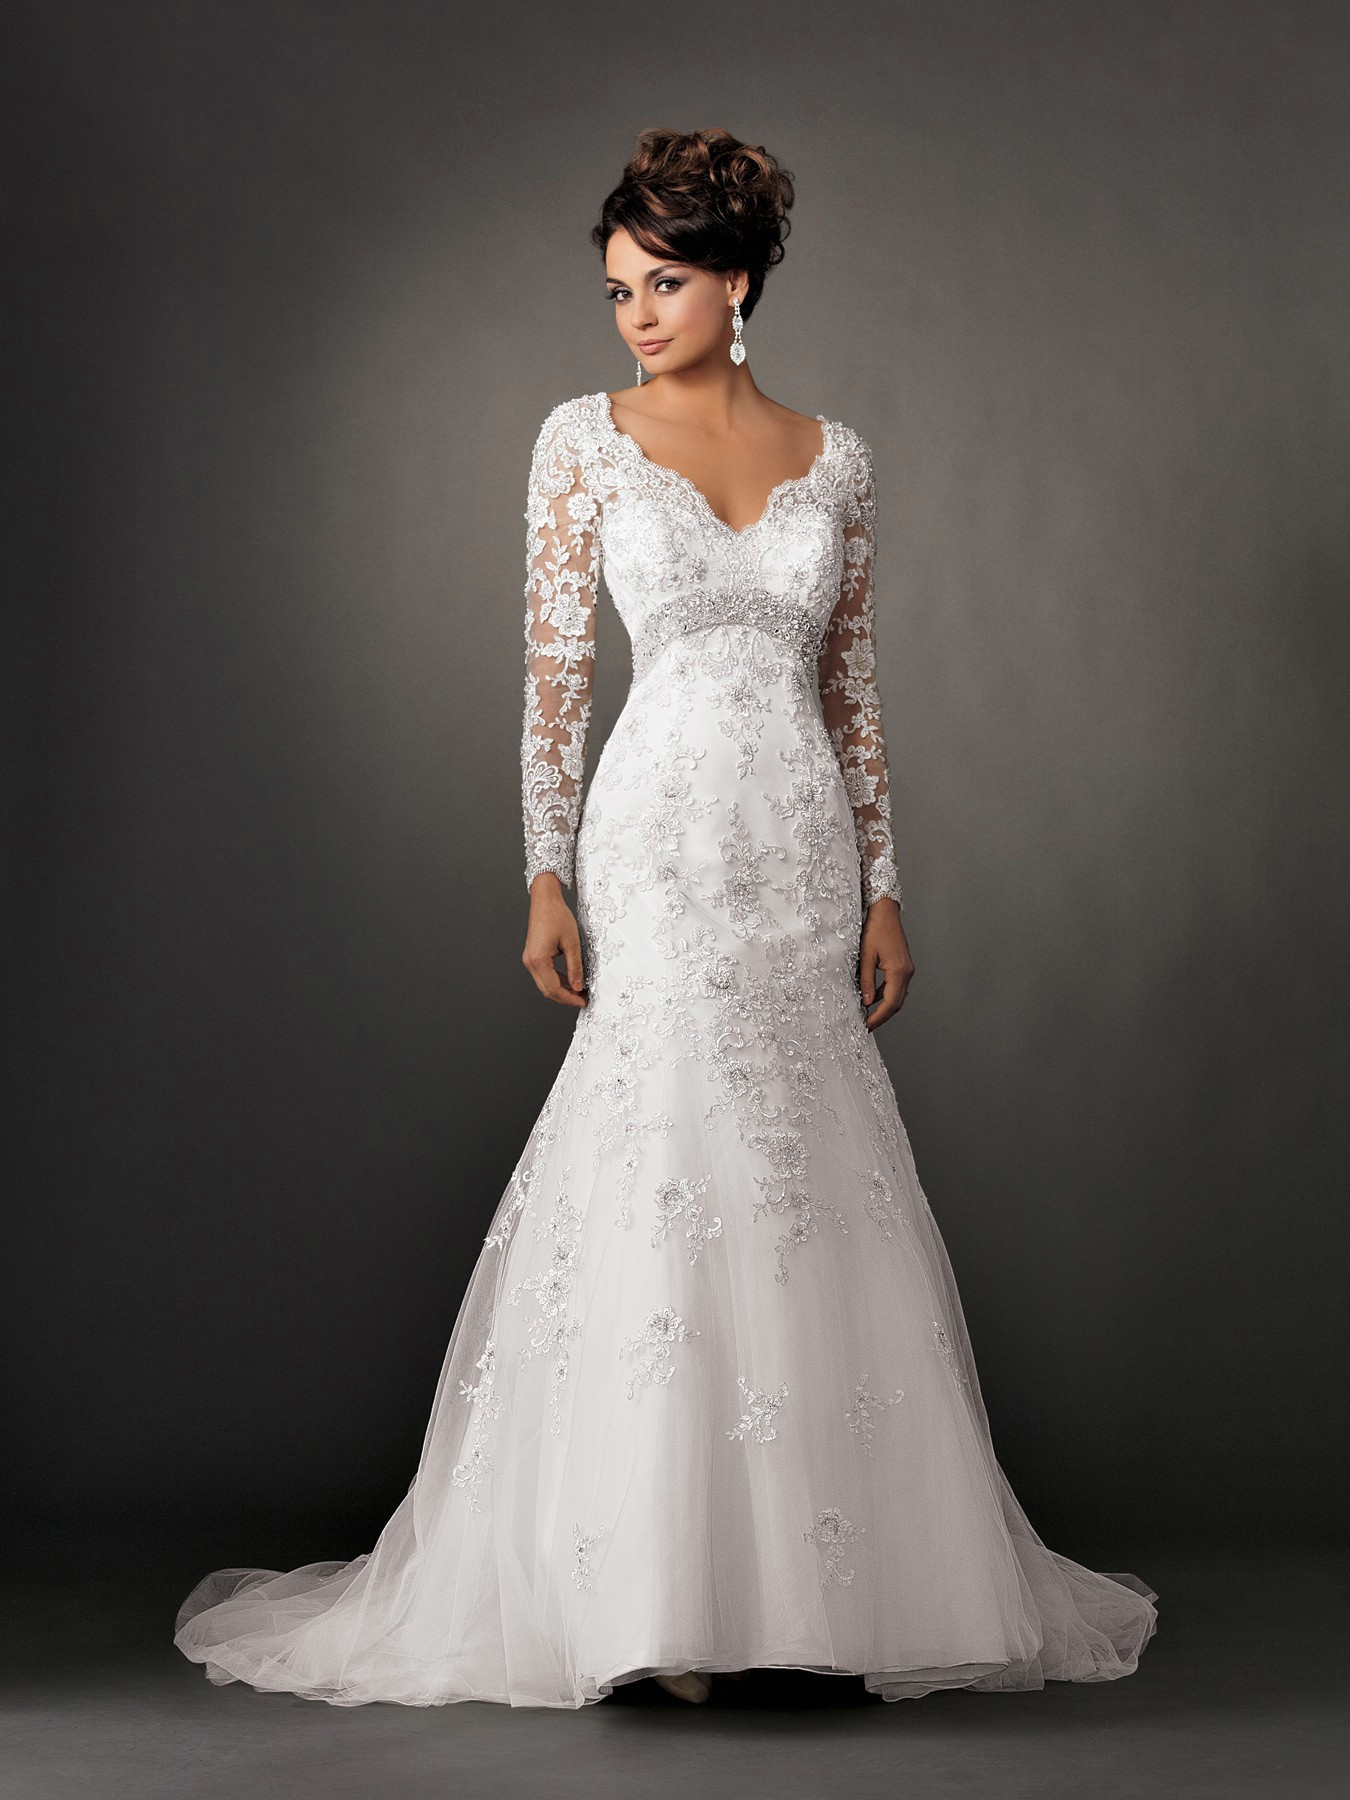 classical collection of mermaid wedding dresses with lace